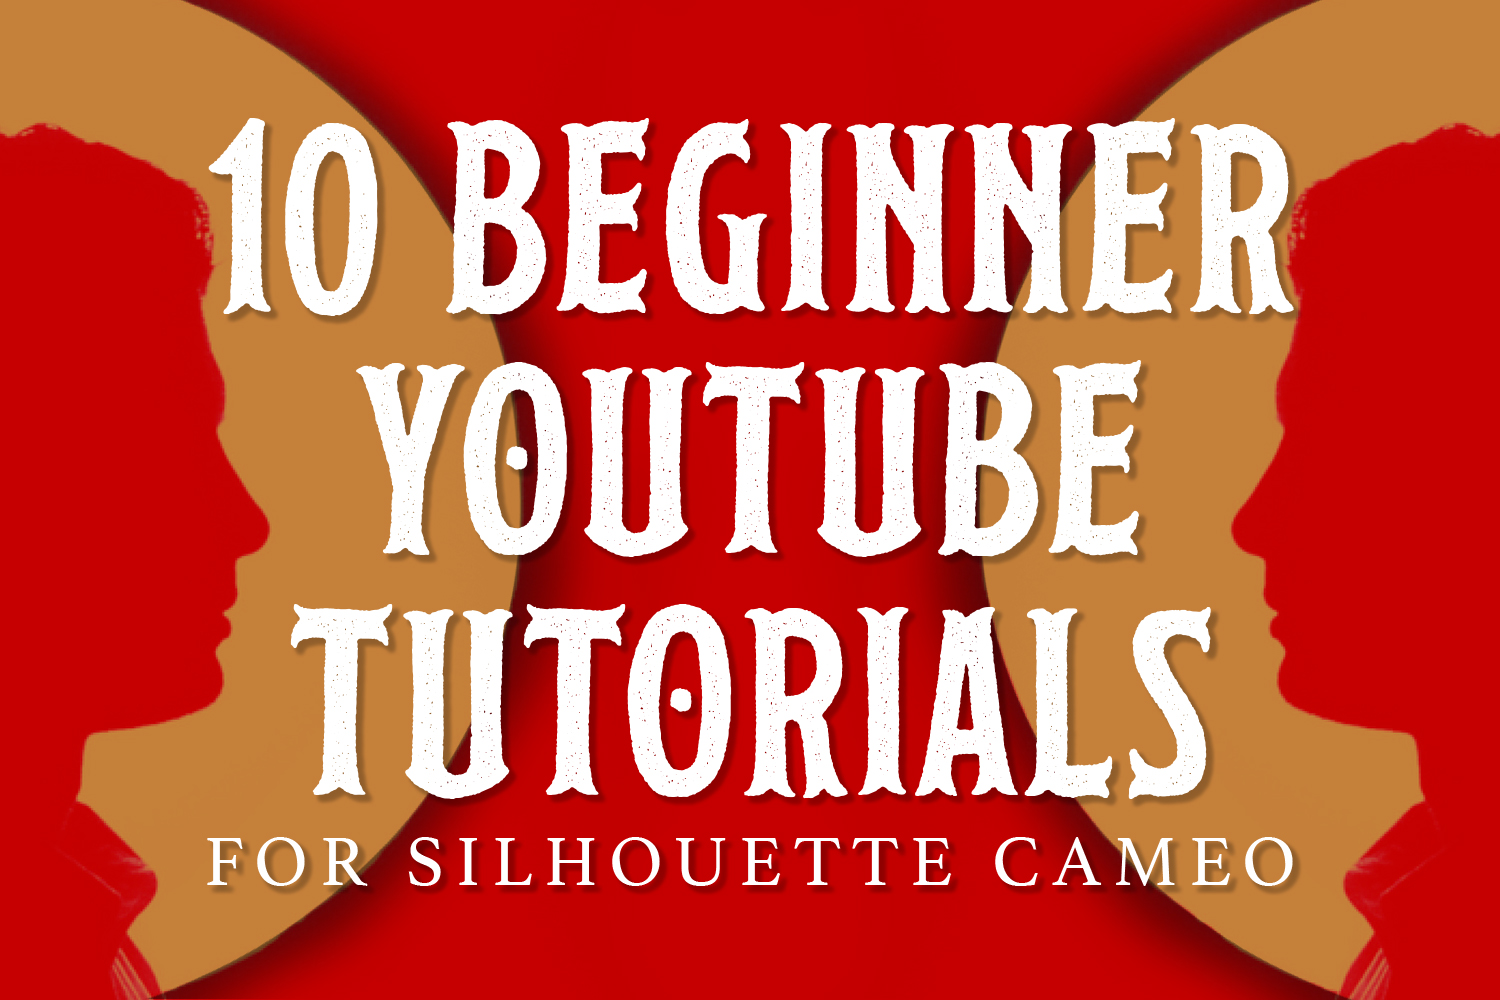 10 Beginner YouTube Tutorials for Silhouette Cameo